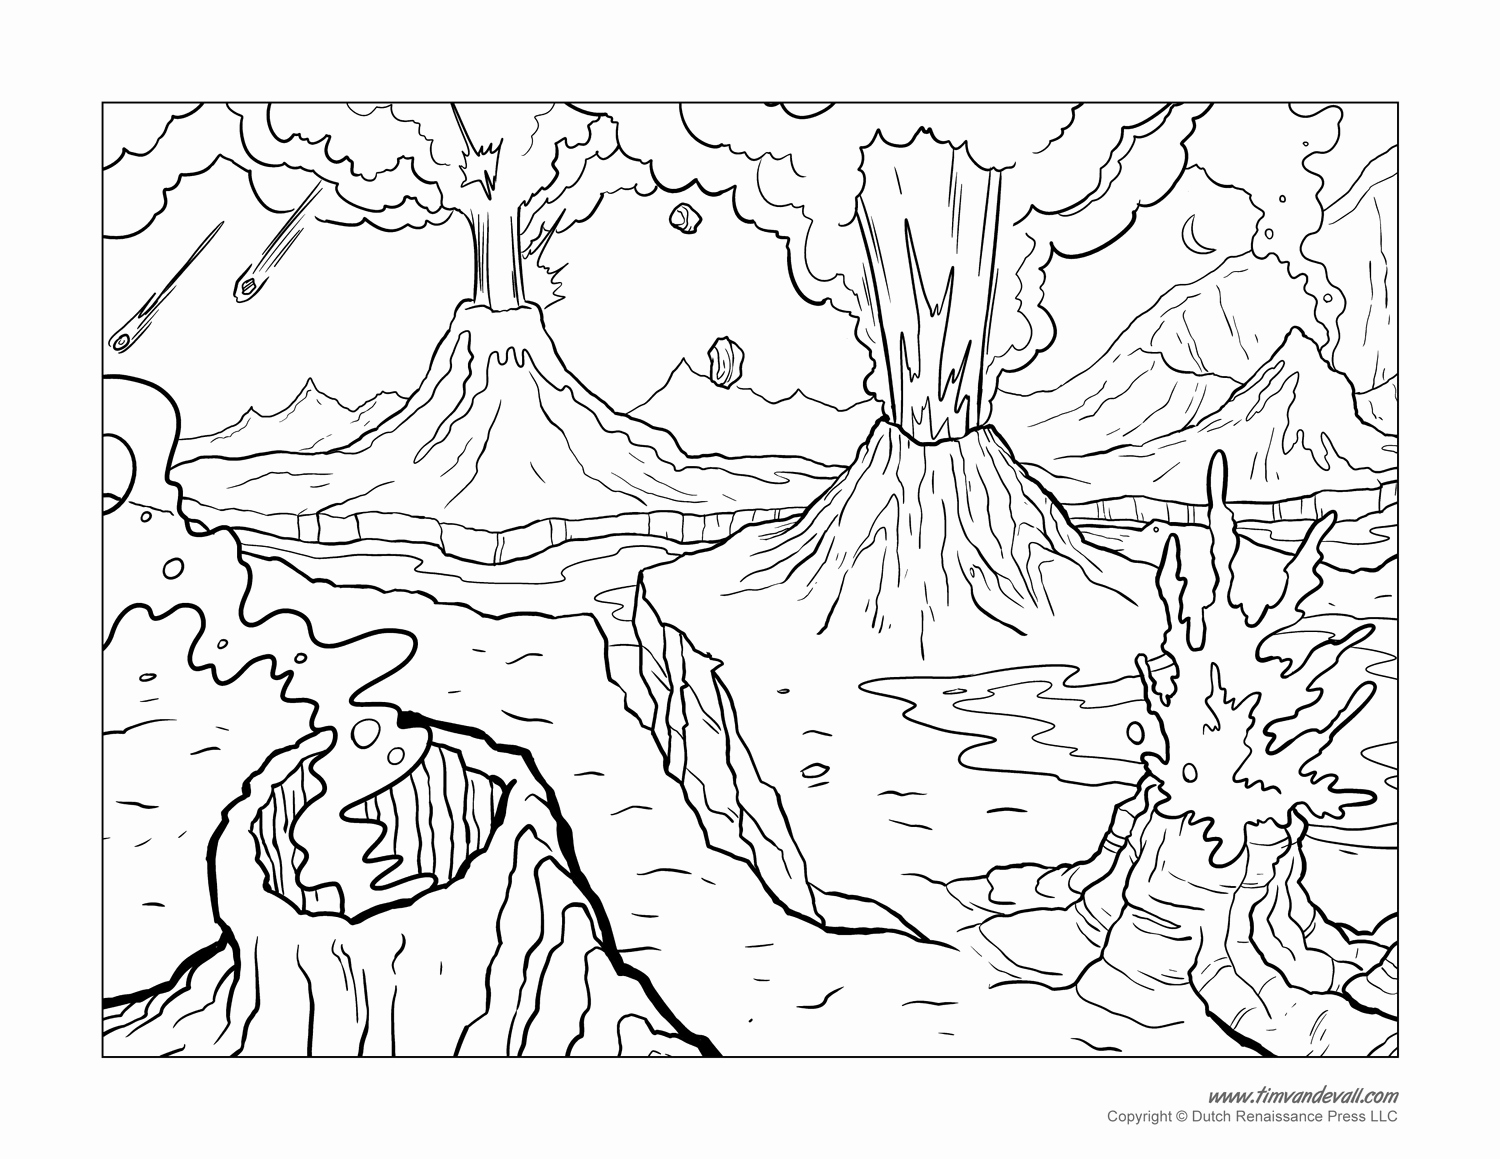 Realistic Landscape Coloring Pages At Getcolorings